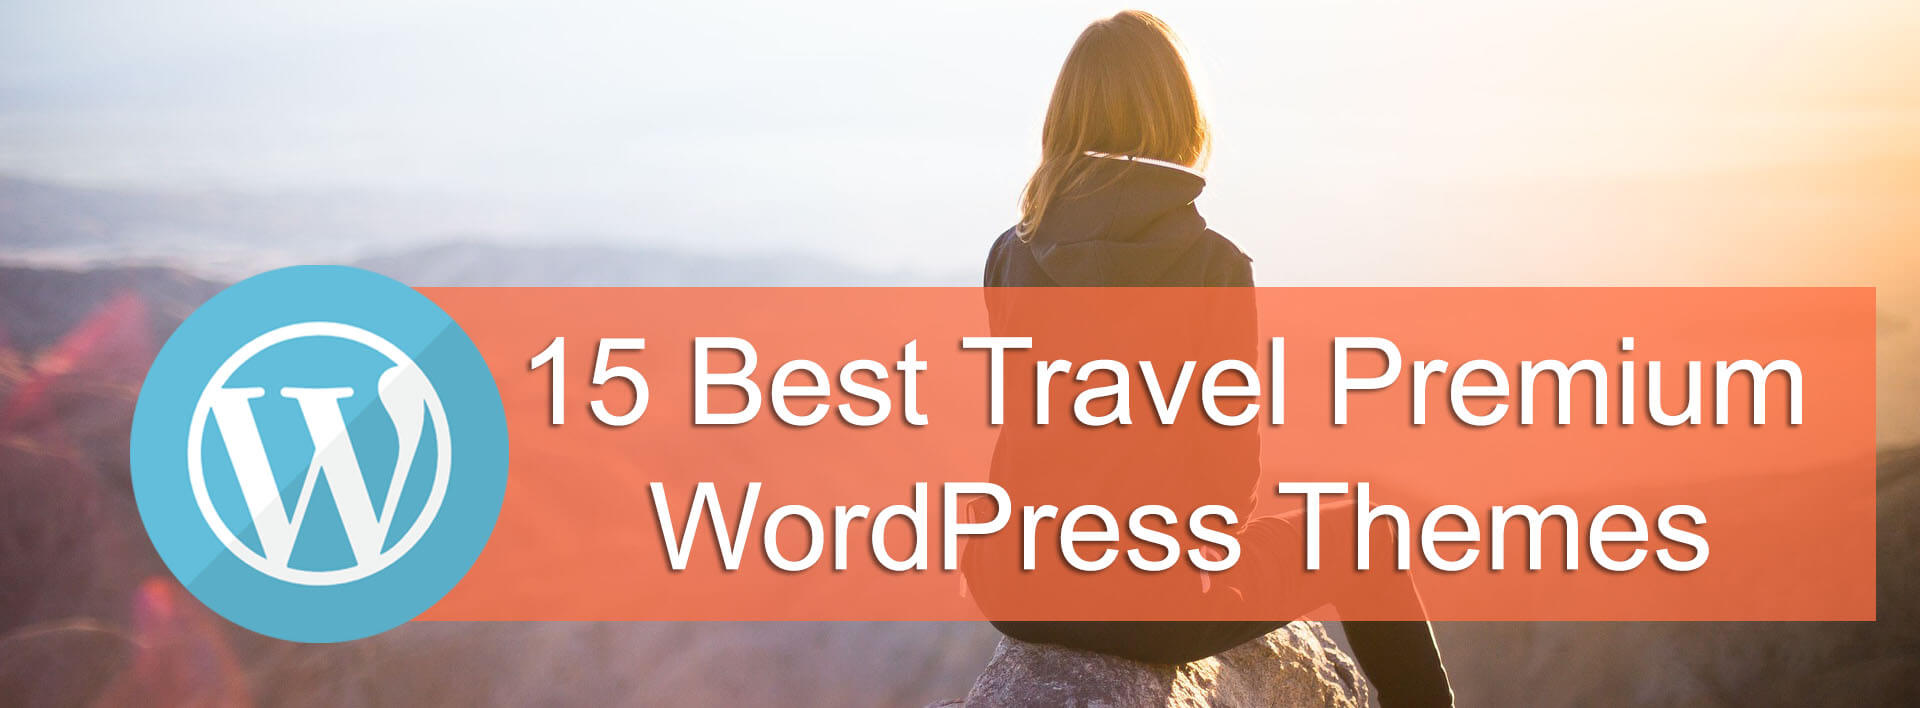 Best Travel Premium WordPress Themes